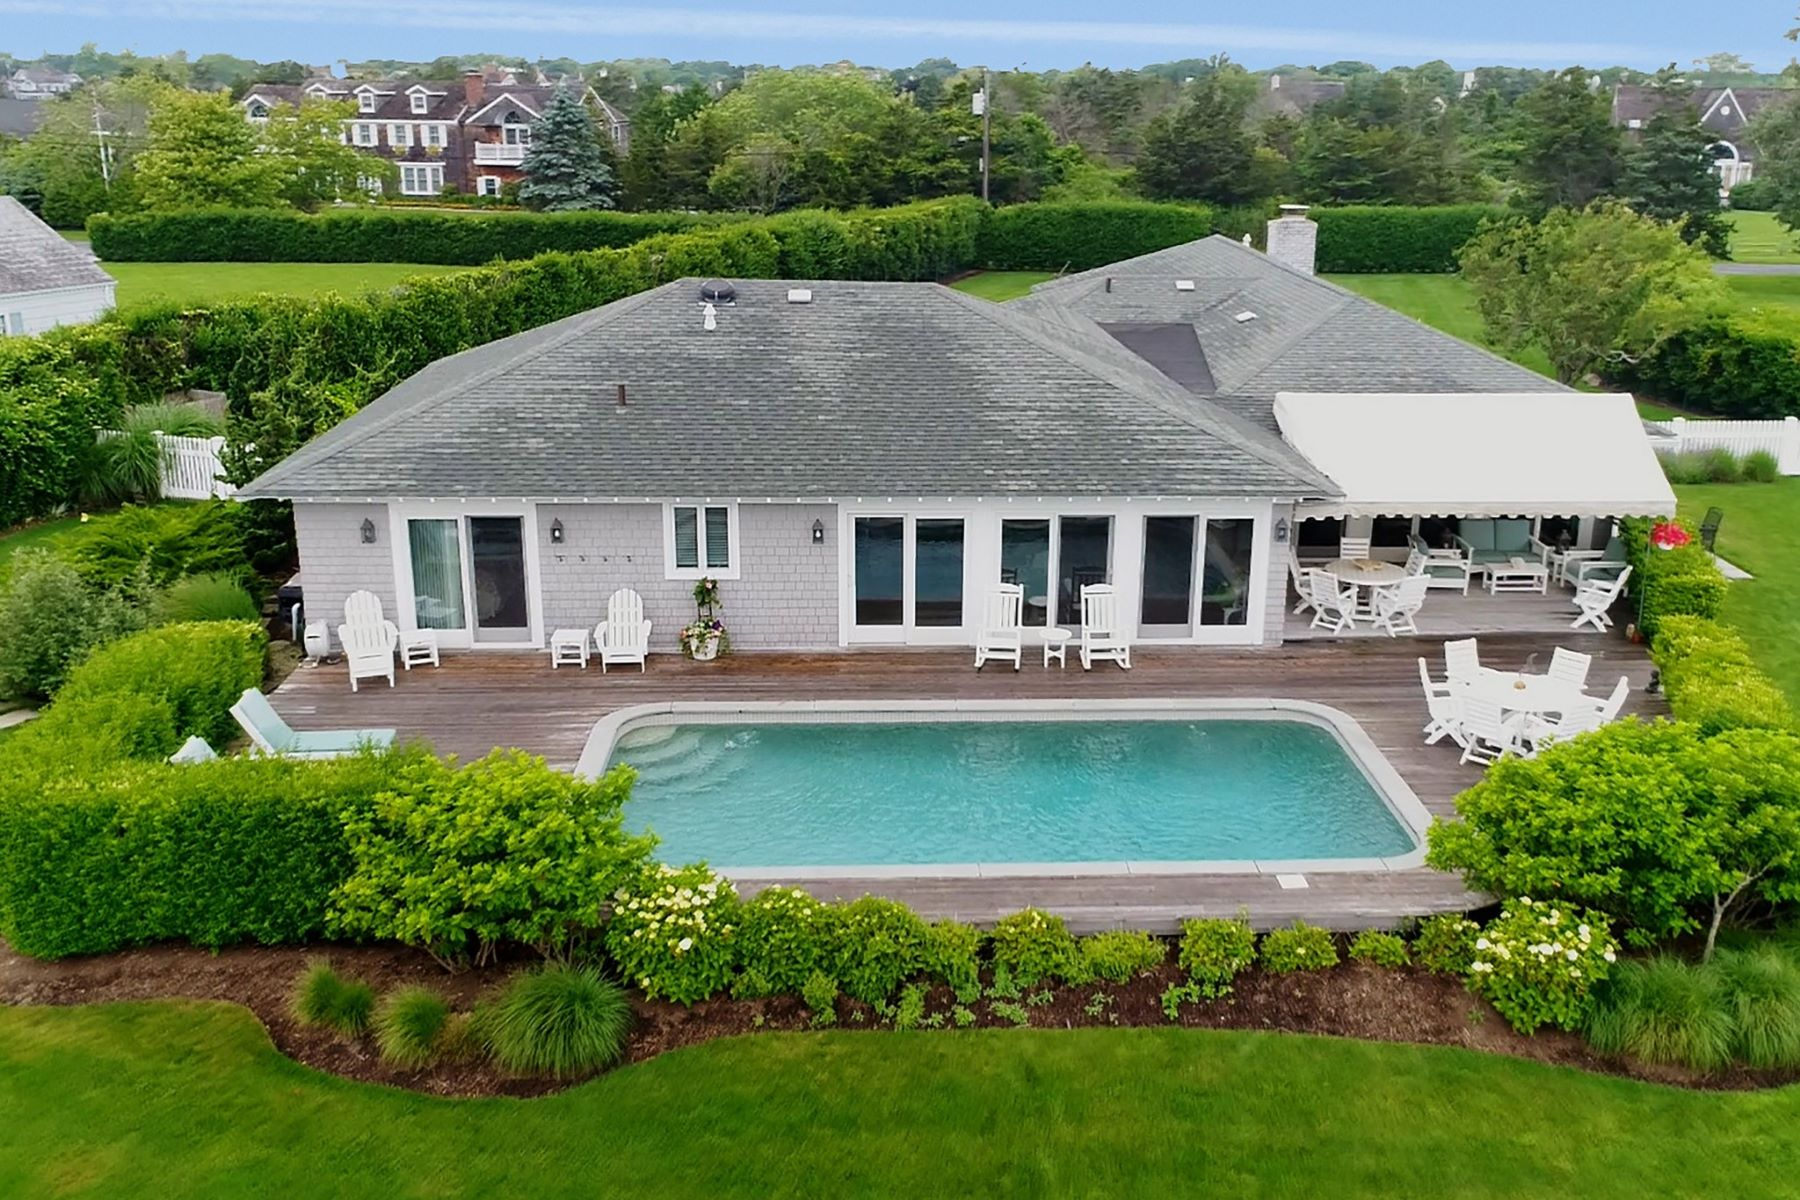 Single Family Home for Sale at 29 E Ogden Ln , Quogue, NY 11959 Quogue, New York, 11959 United States